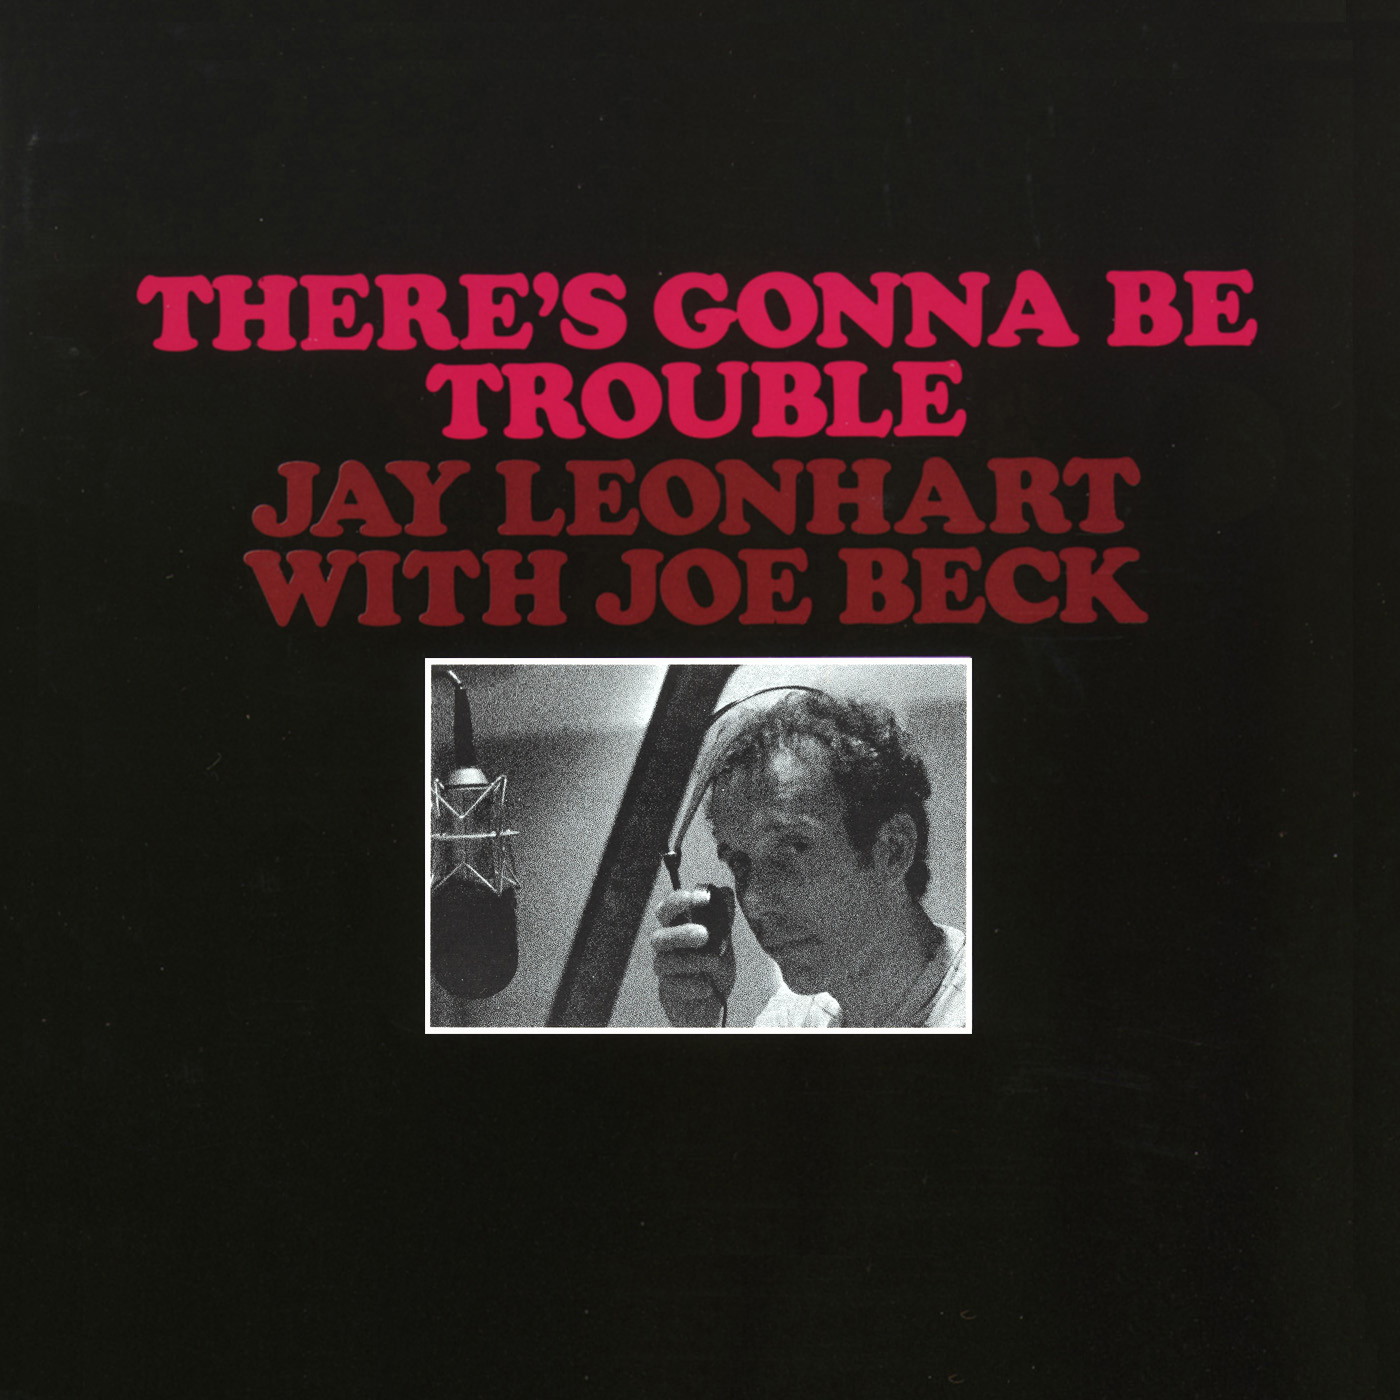 There's Gonna Be Trouble by Jay Leonhart cover